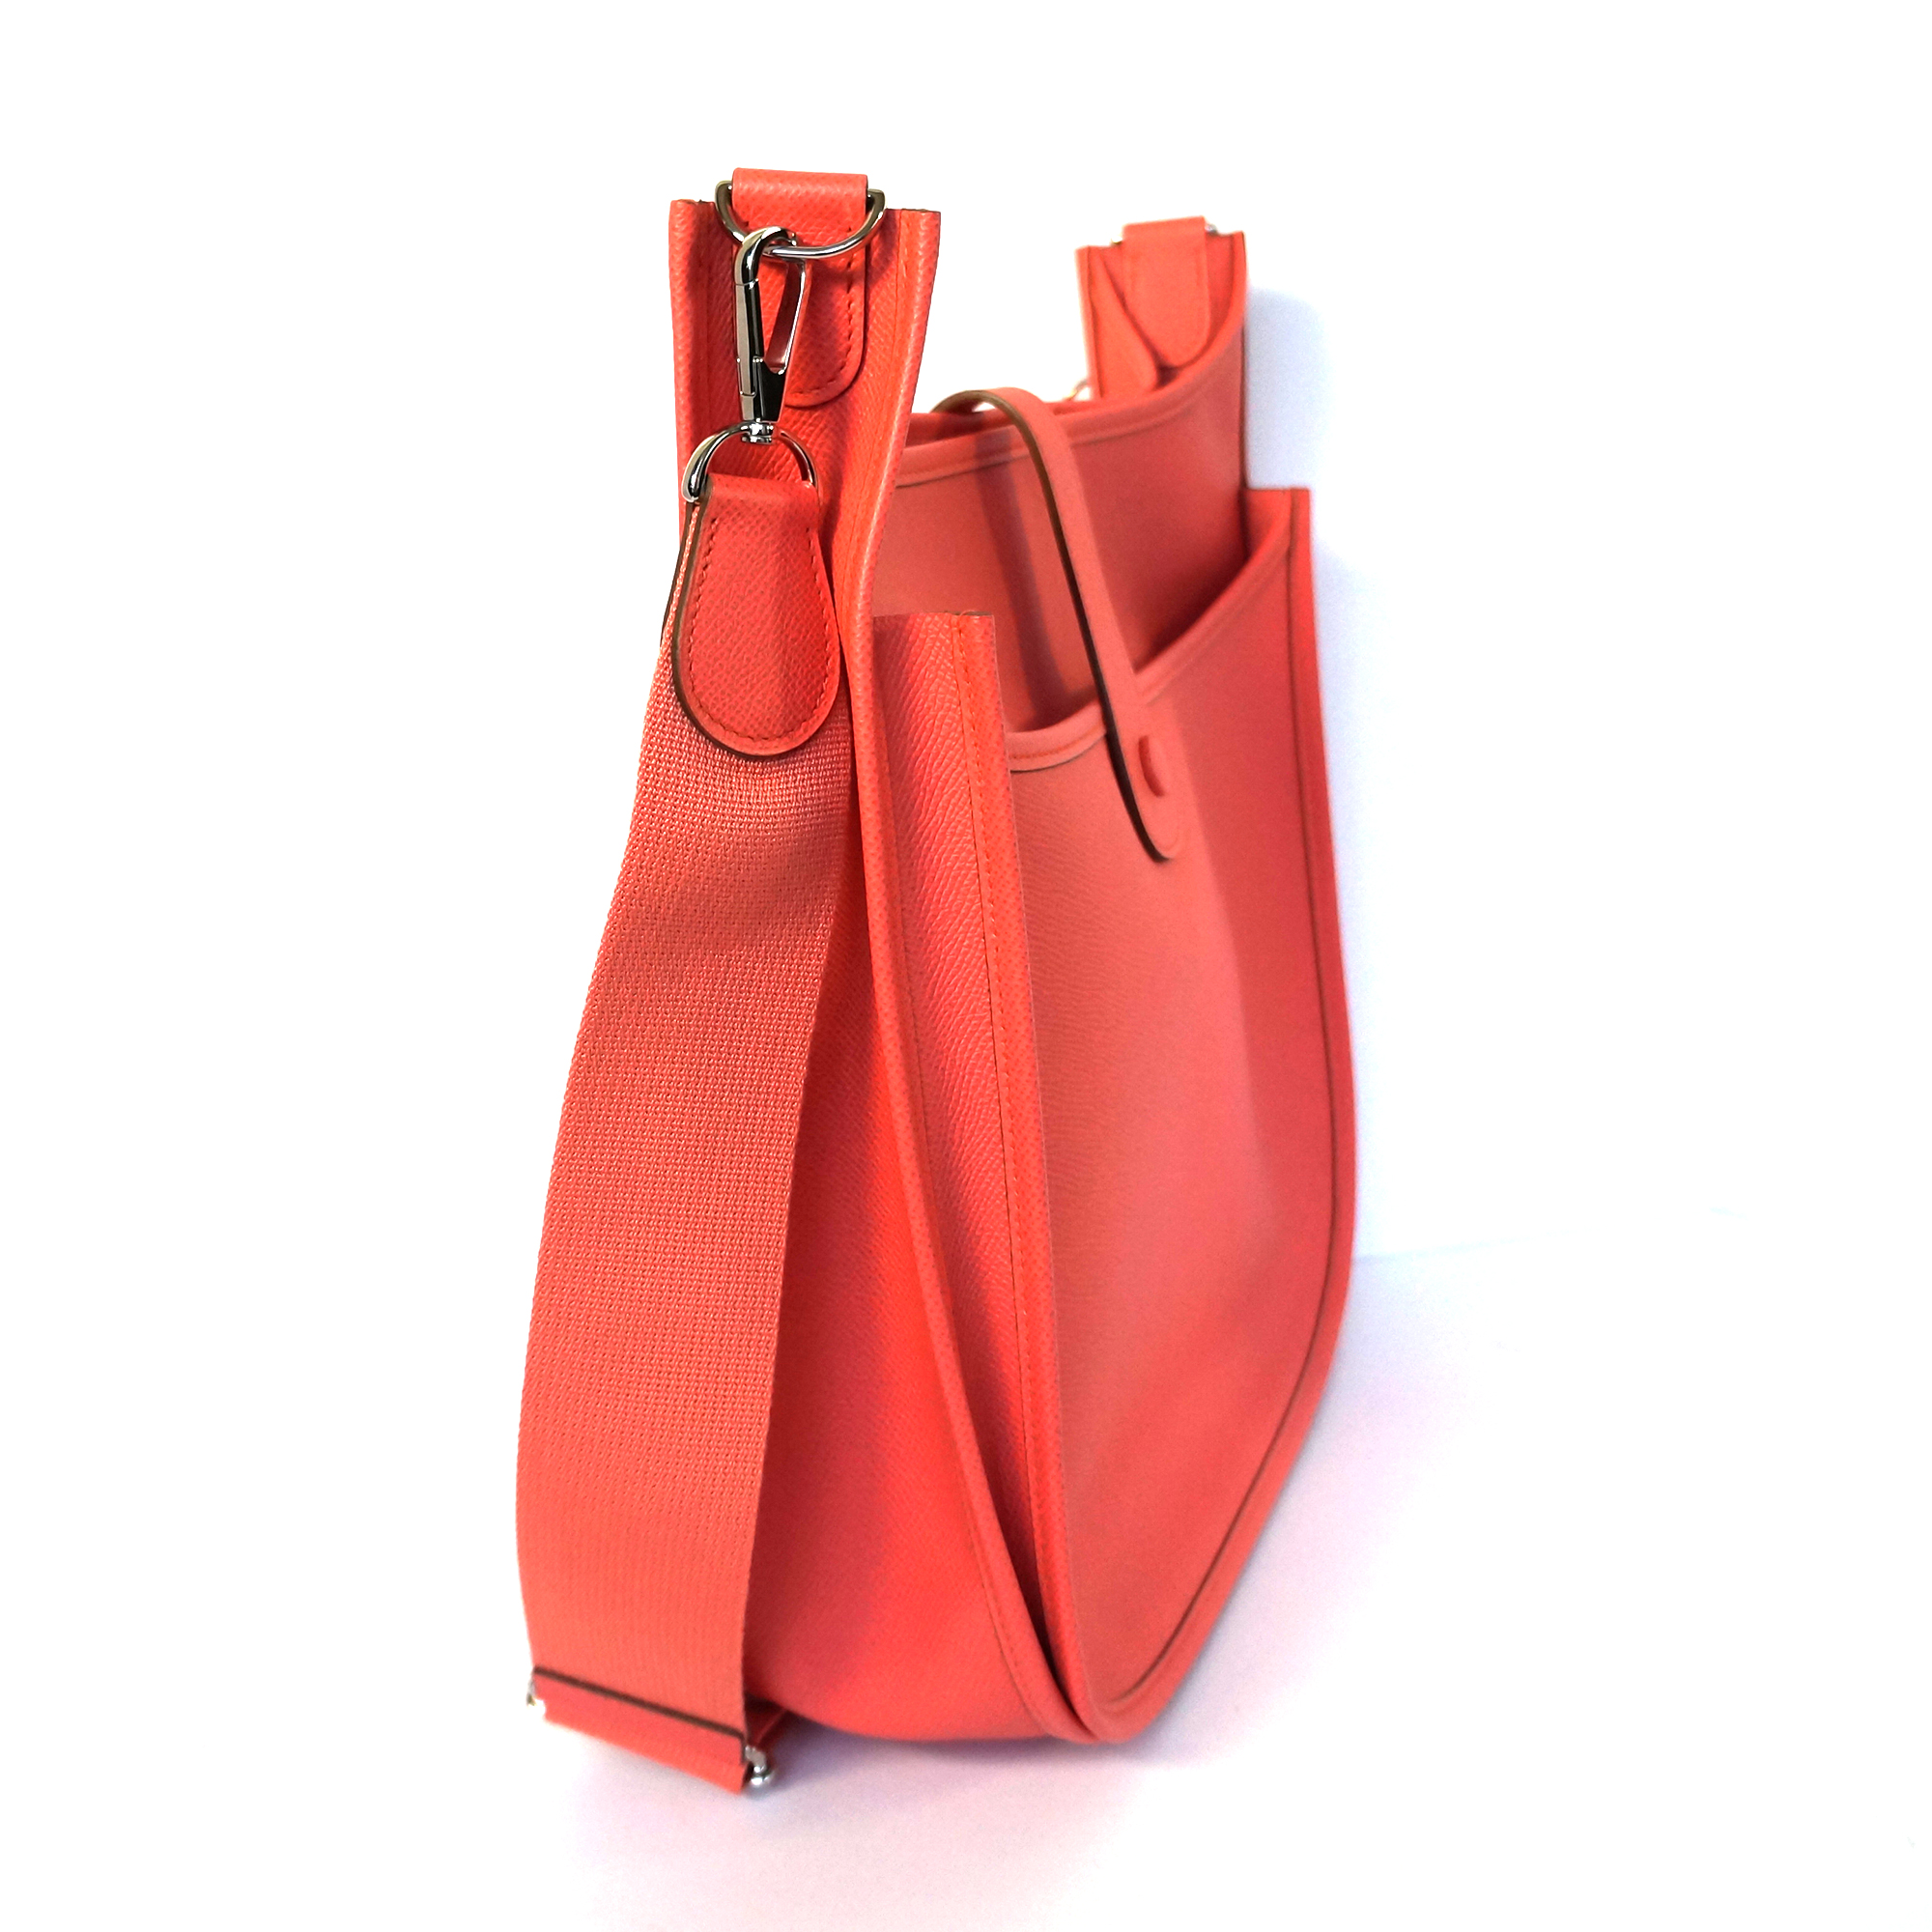 Hermes Evelyne Iii Gm Bag Coral